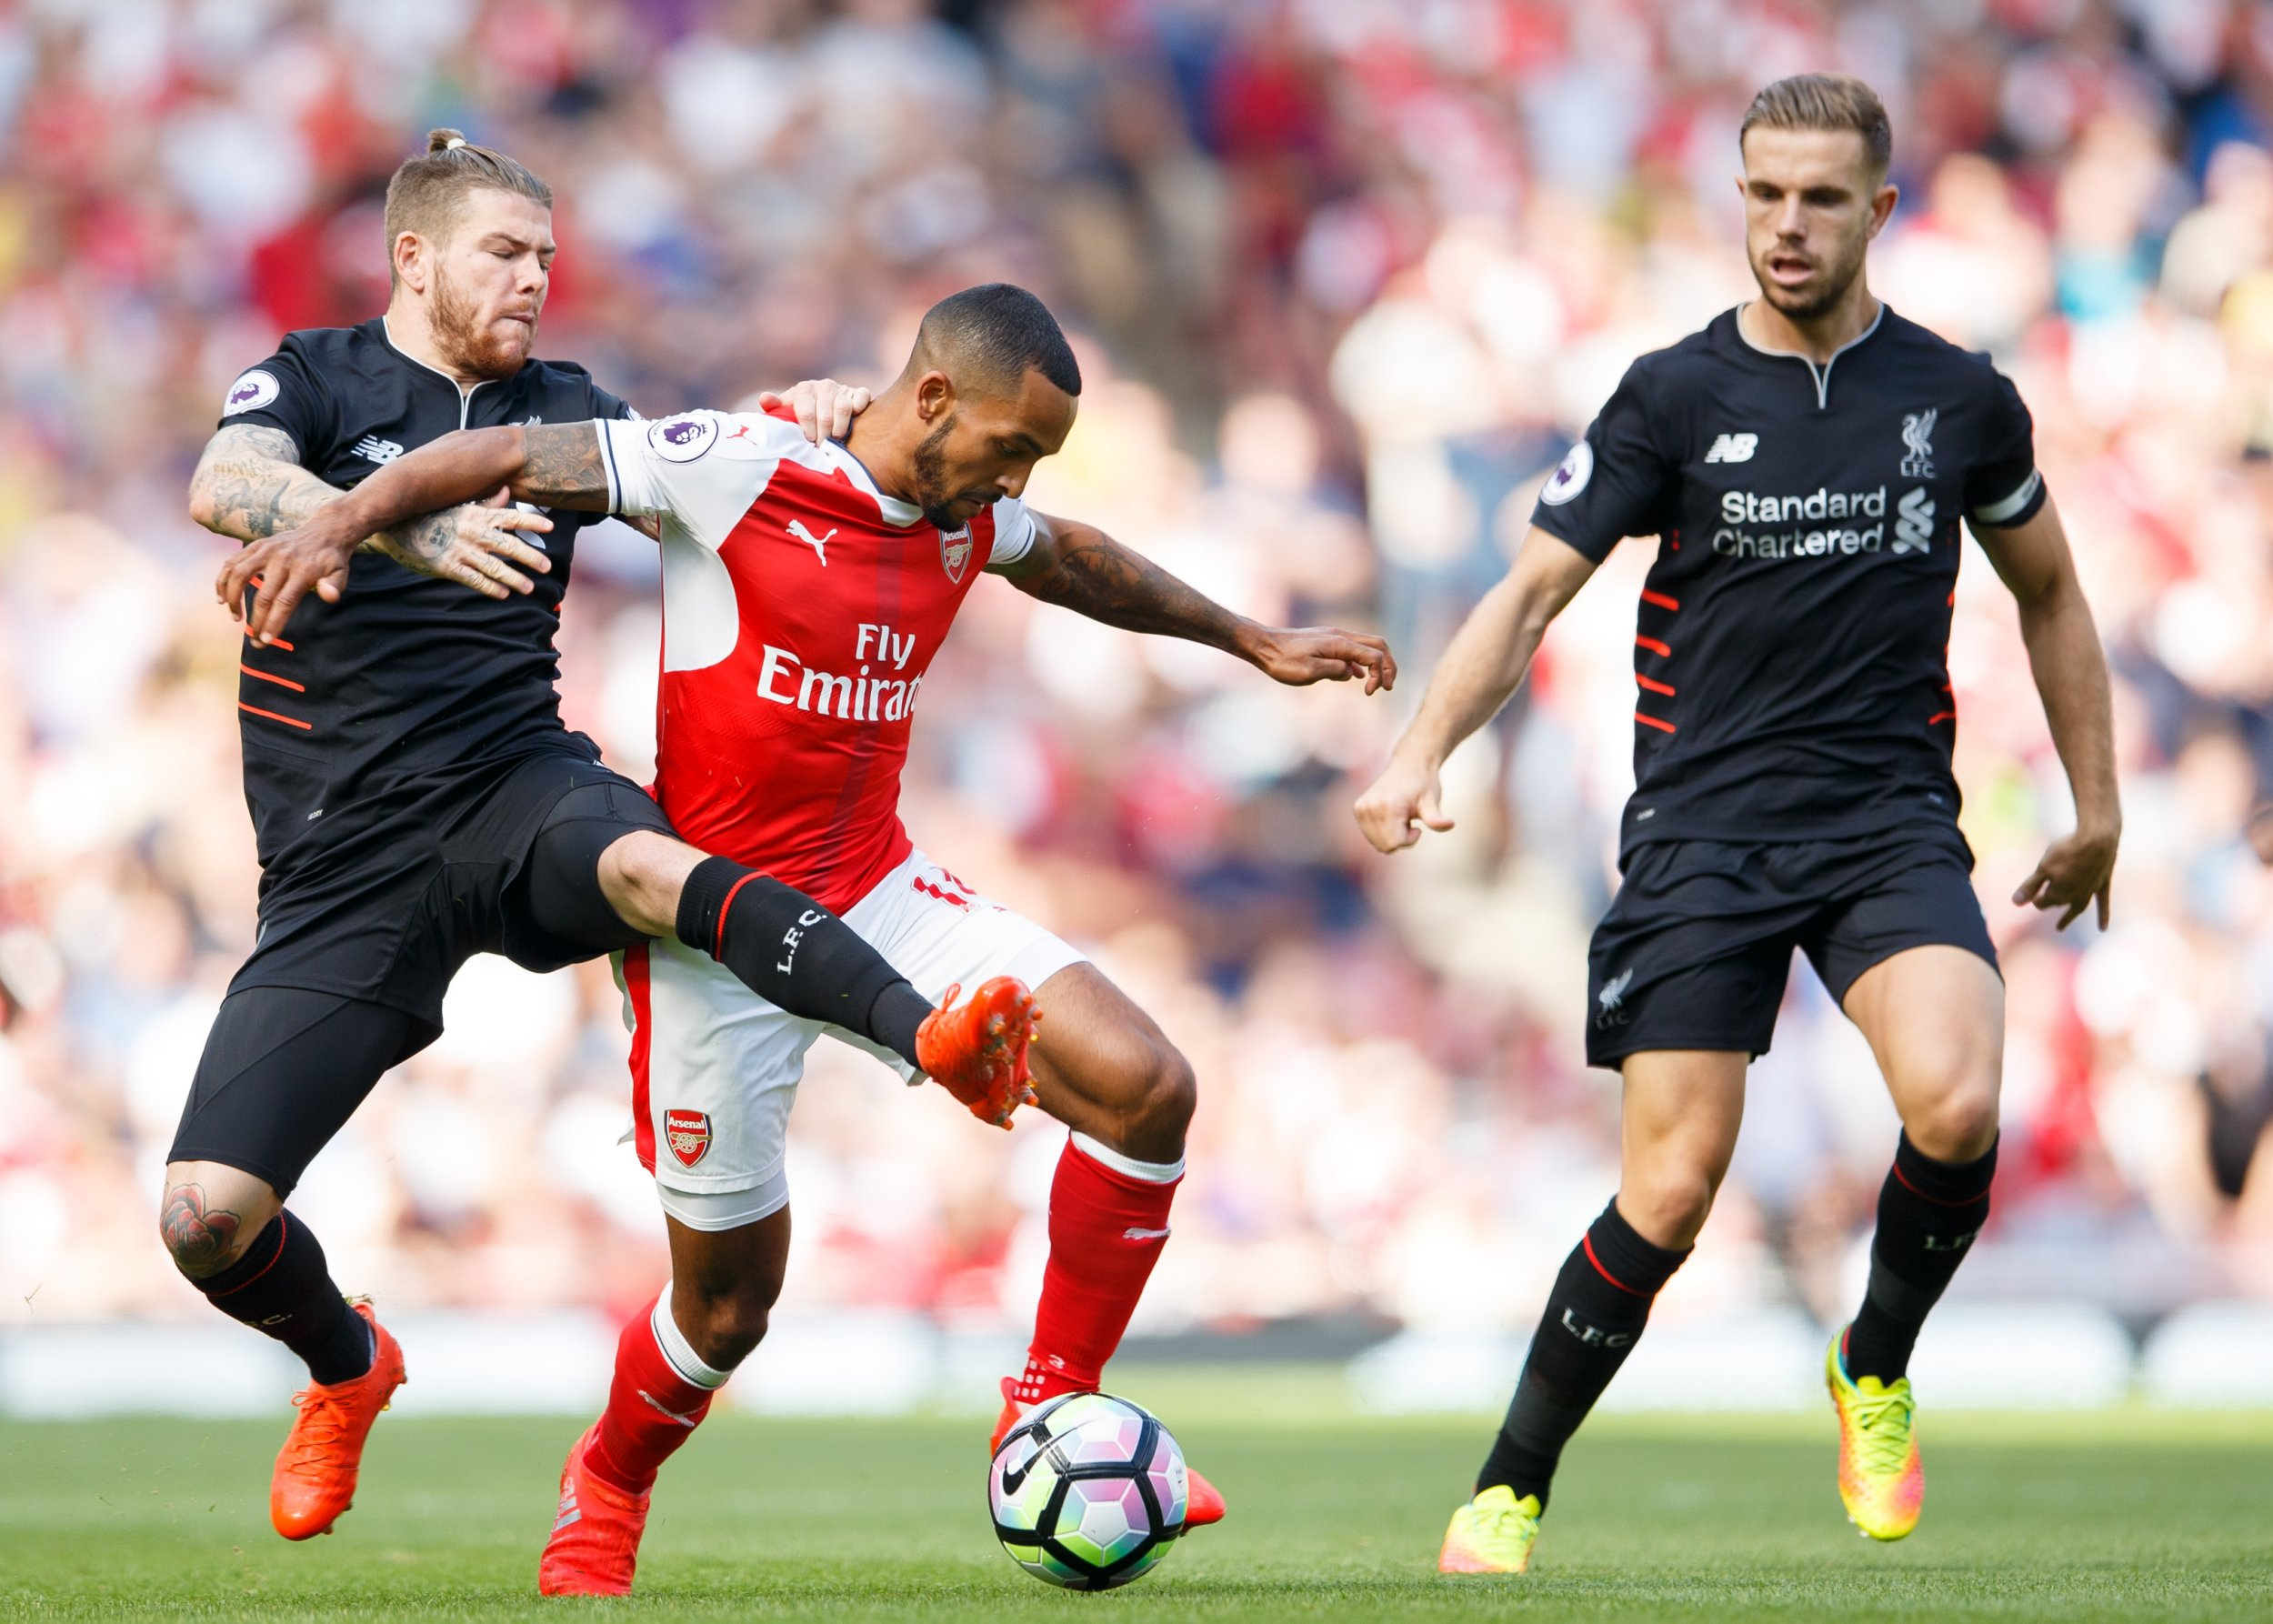 Theo Walcott of Arsenal takes on Alberto Moreno and Jordan Henderson of Liverpool during the Premier League match between Arsenal and Liverpool played at The Emirates Stadium, London on 14th August 2016